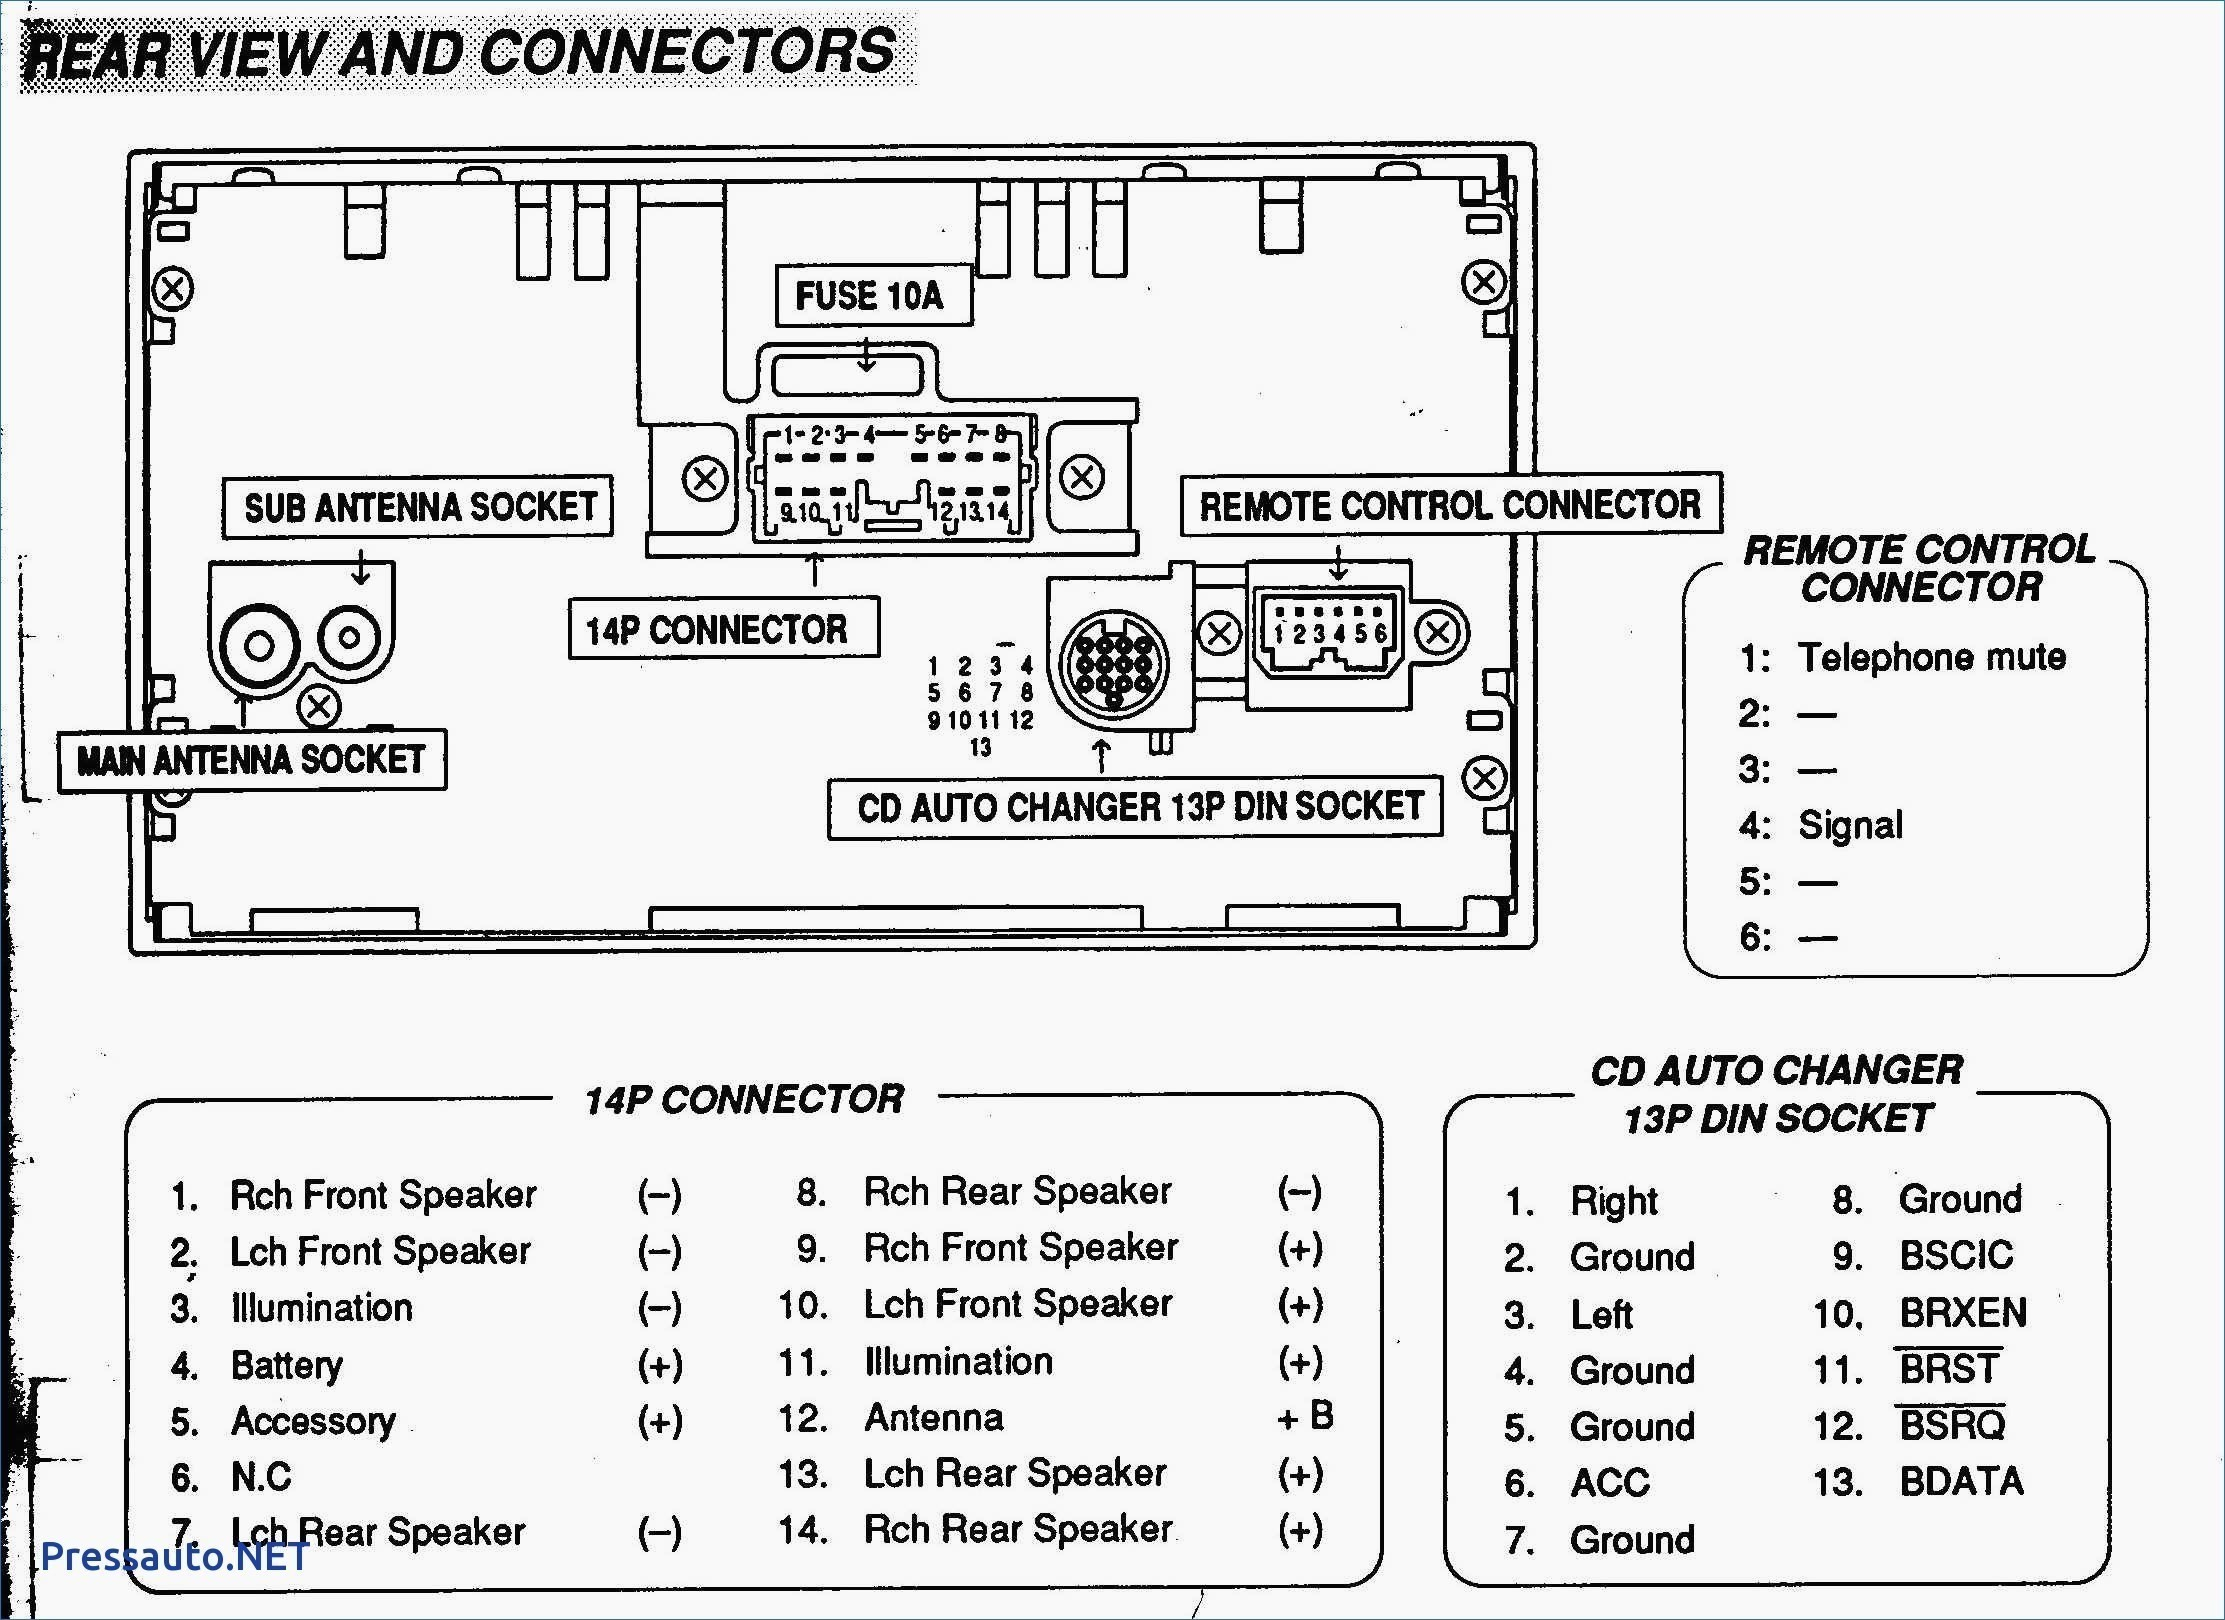 2004 mazda 3 wiring diagram - wiring diagram data 2005 mazda 3 audio wiring diagram  tennisabtlg-tus-erfenbach.de